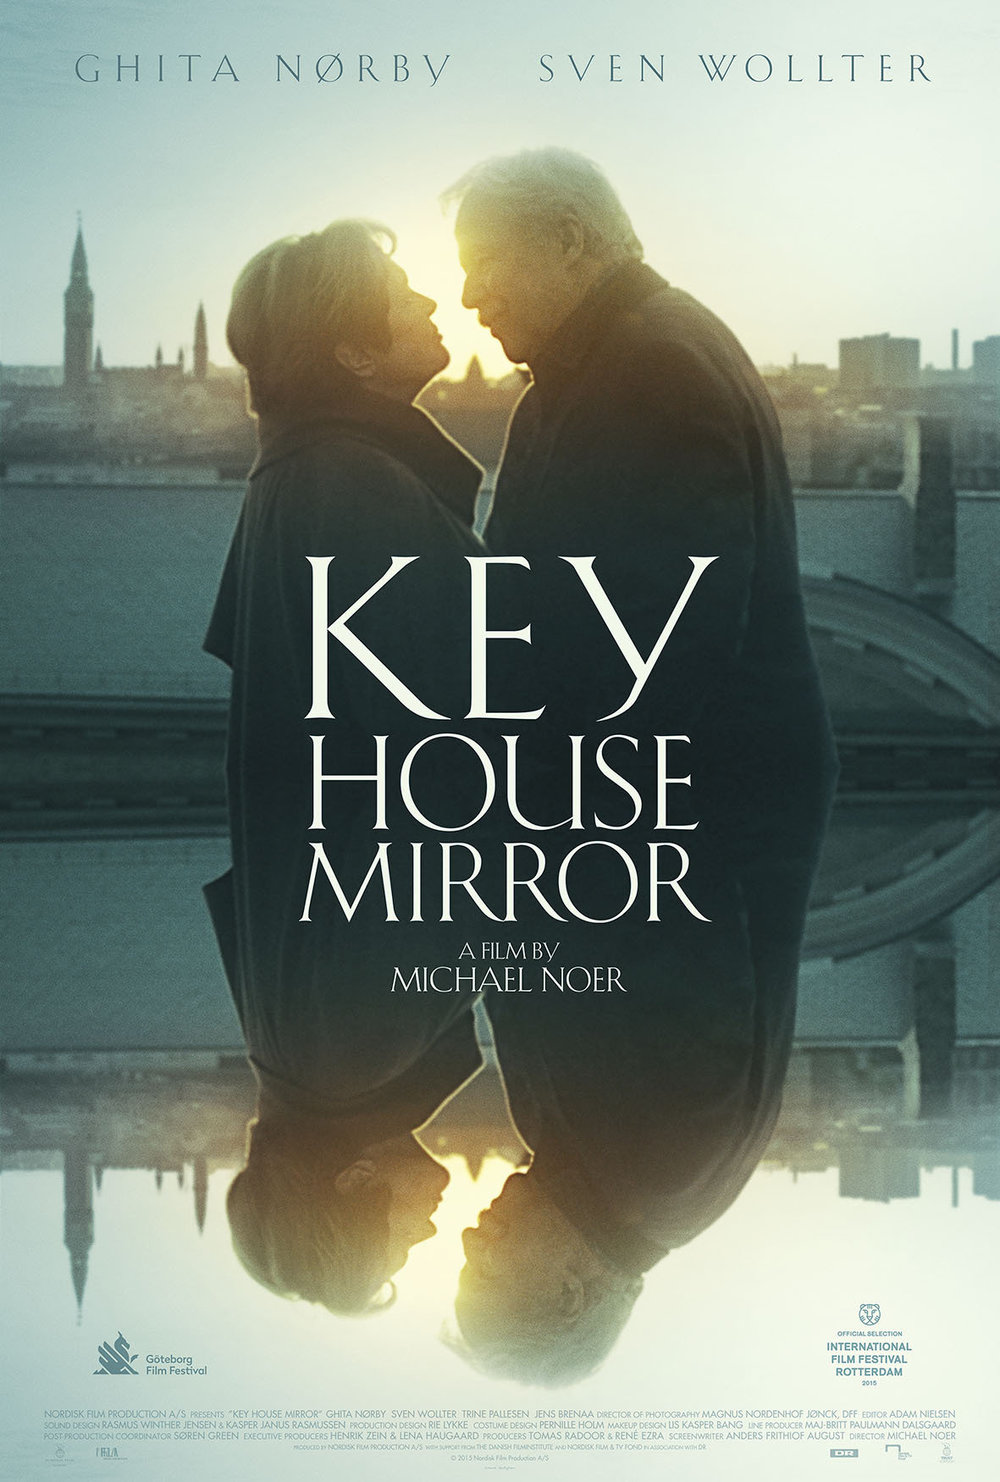 Key House Mirror    Lily and Max have been married for more than 50 years. Now they live together in a nursing home, where Max has been reliant on professional care since his stroke. Lily has been putting her own needs aside and…   Read More